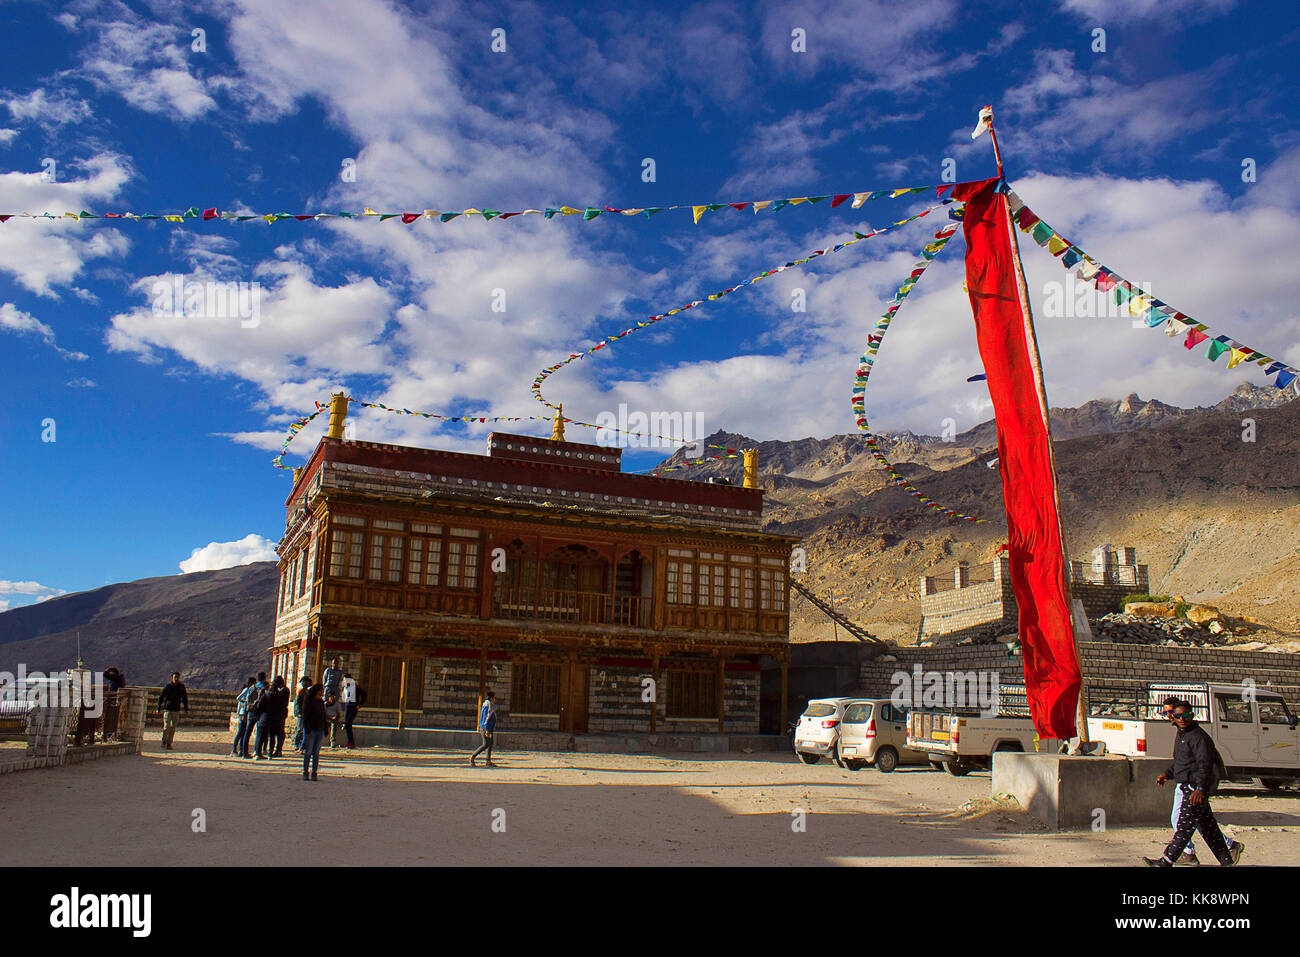 Decorations at Monastery of Gue, Spiti, Shimla, Himachal Pradesh, Northern India. - Stock Image